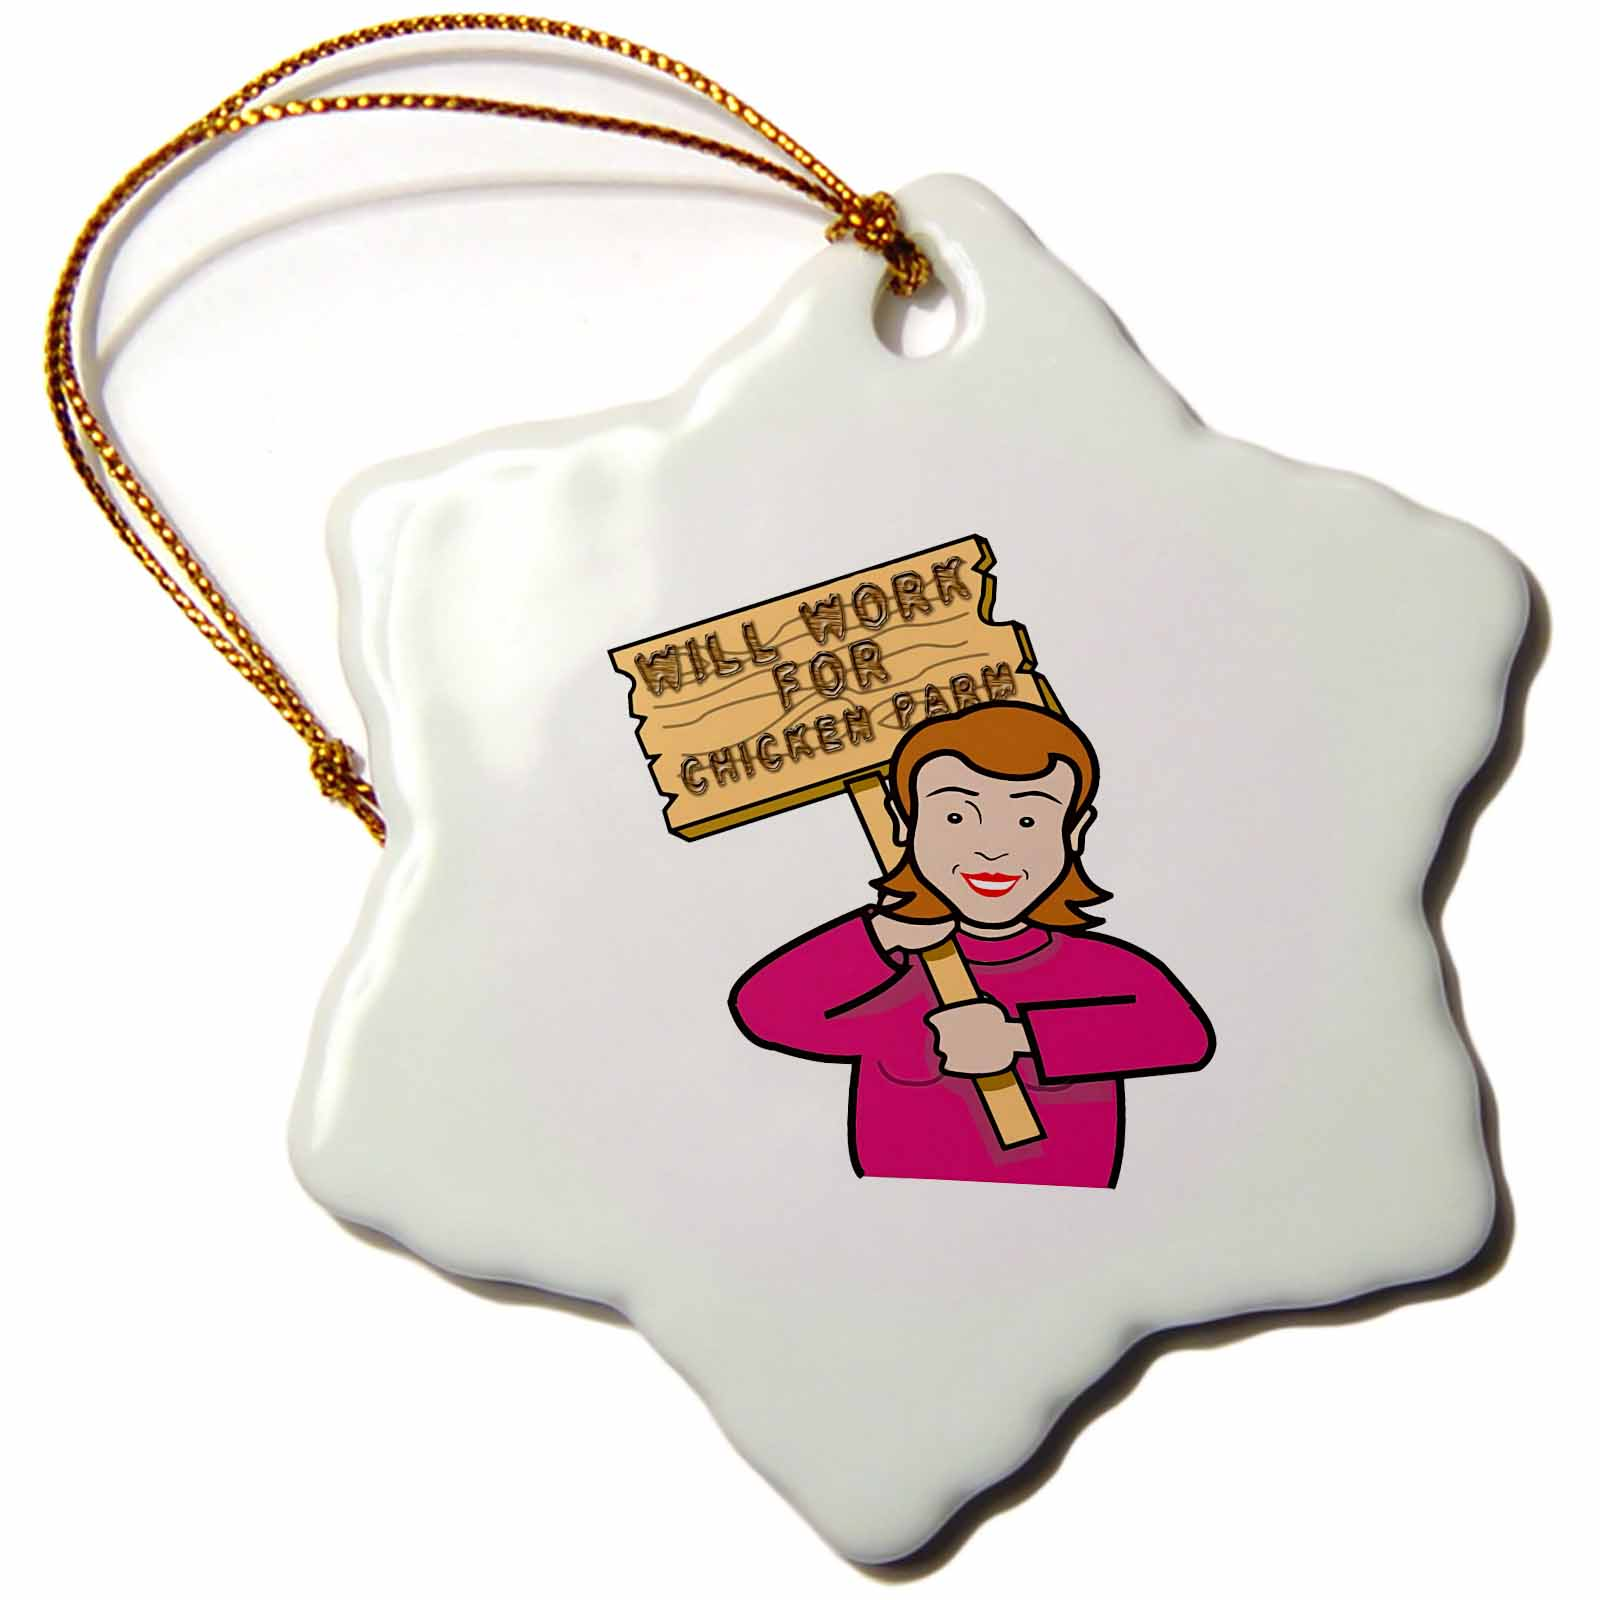 3dRose Funny Humorous Woman Girl With A Sign Will Work For Chicken Parm - Snowflake Ornament, 3-inch